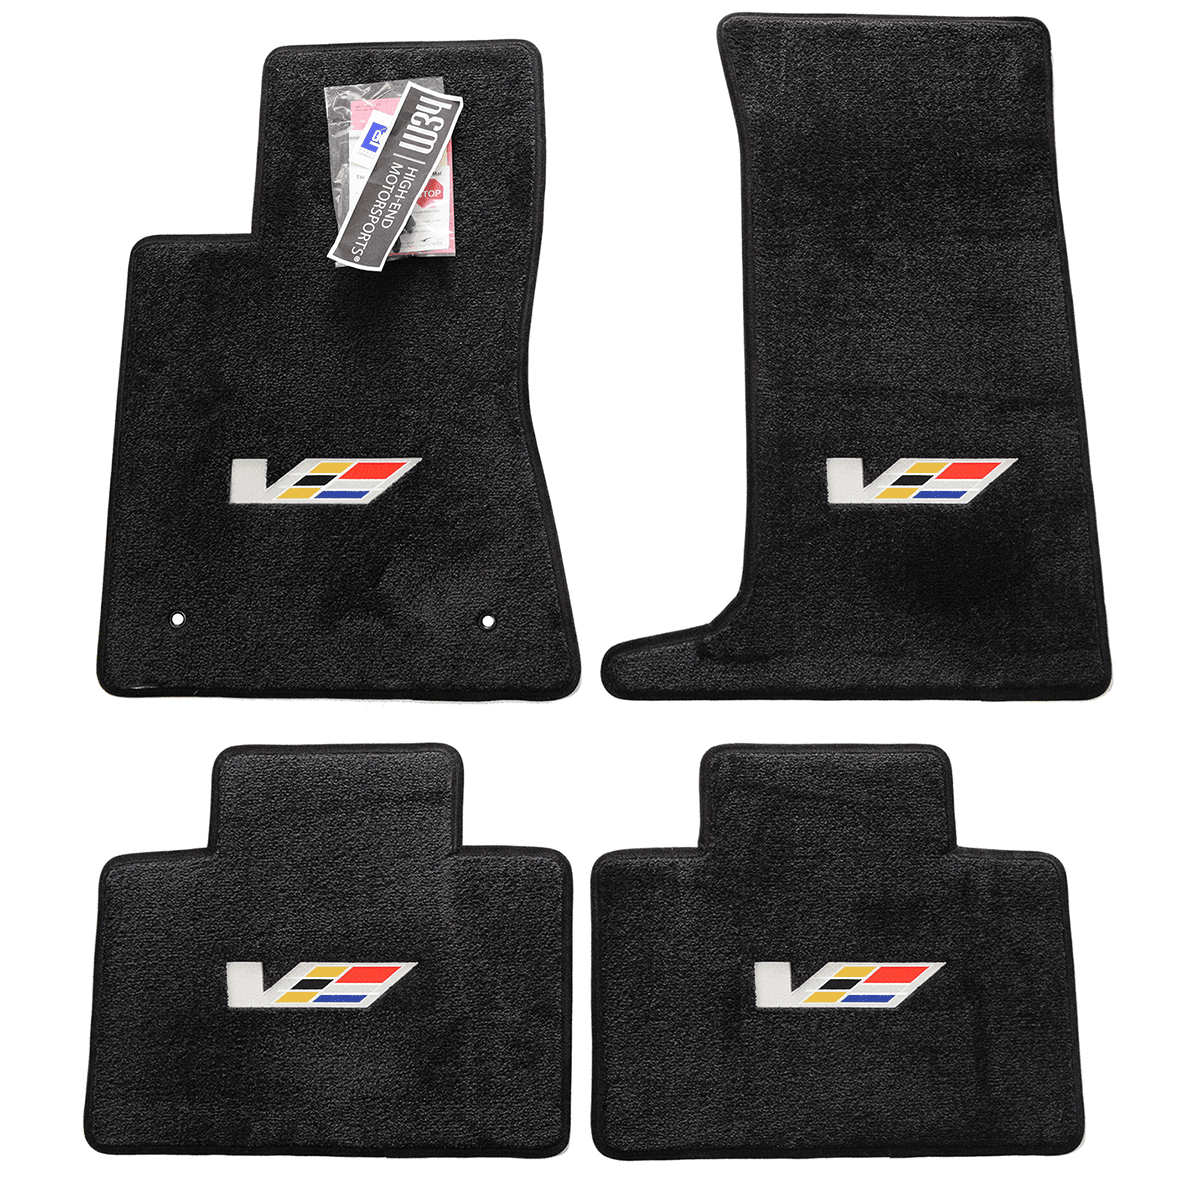 Cadillac CTS CTS-V Coupe Floor Mats 2011